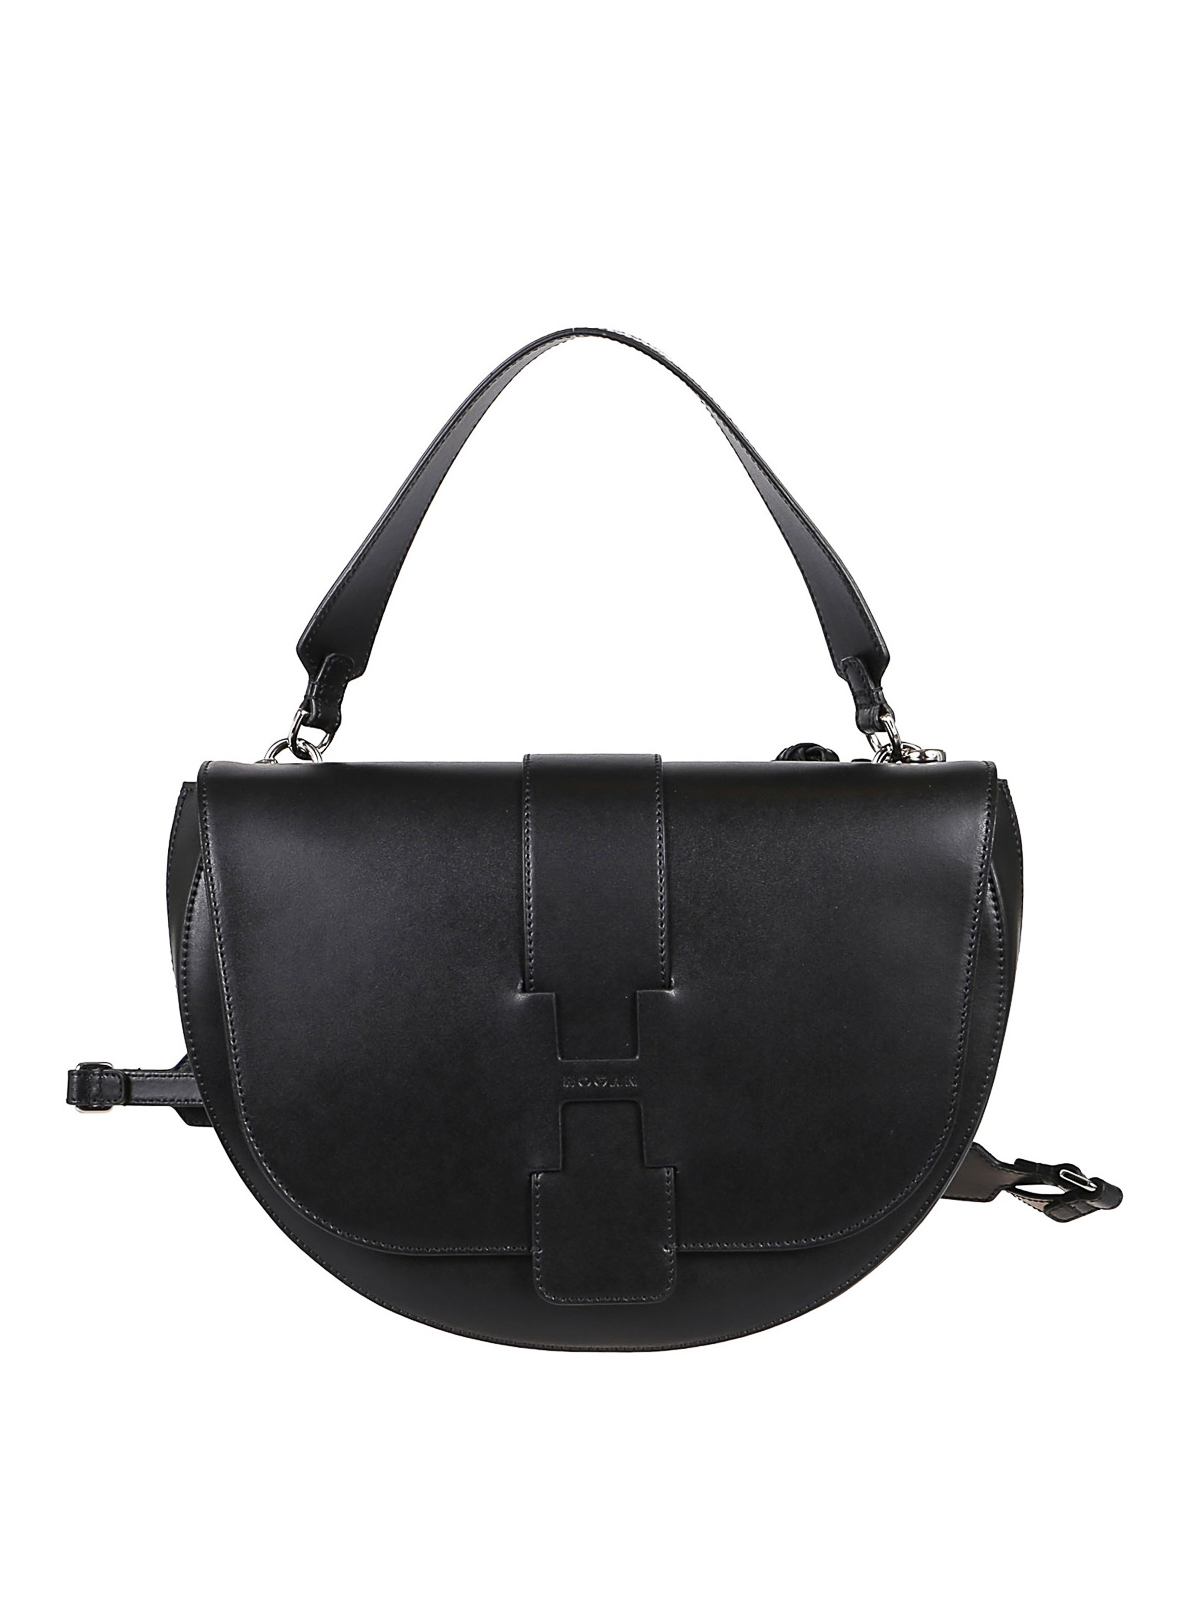 Hogan LEATHER BAG